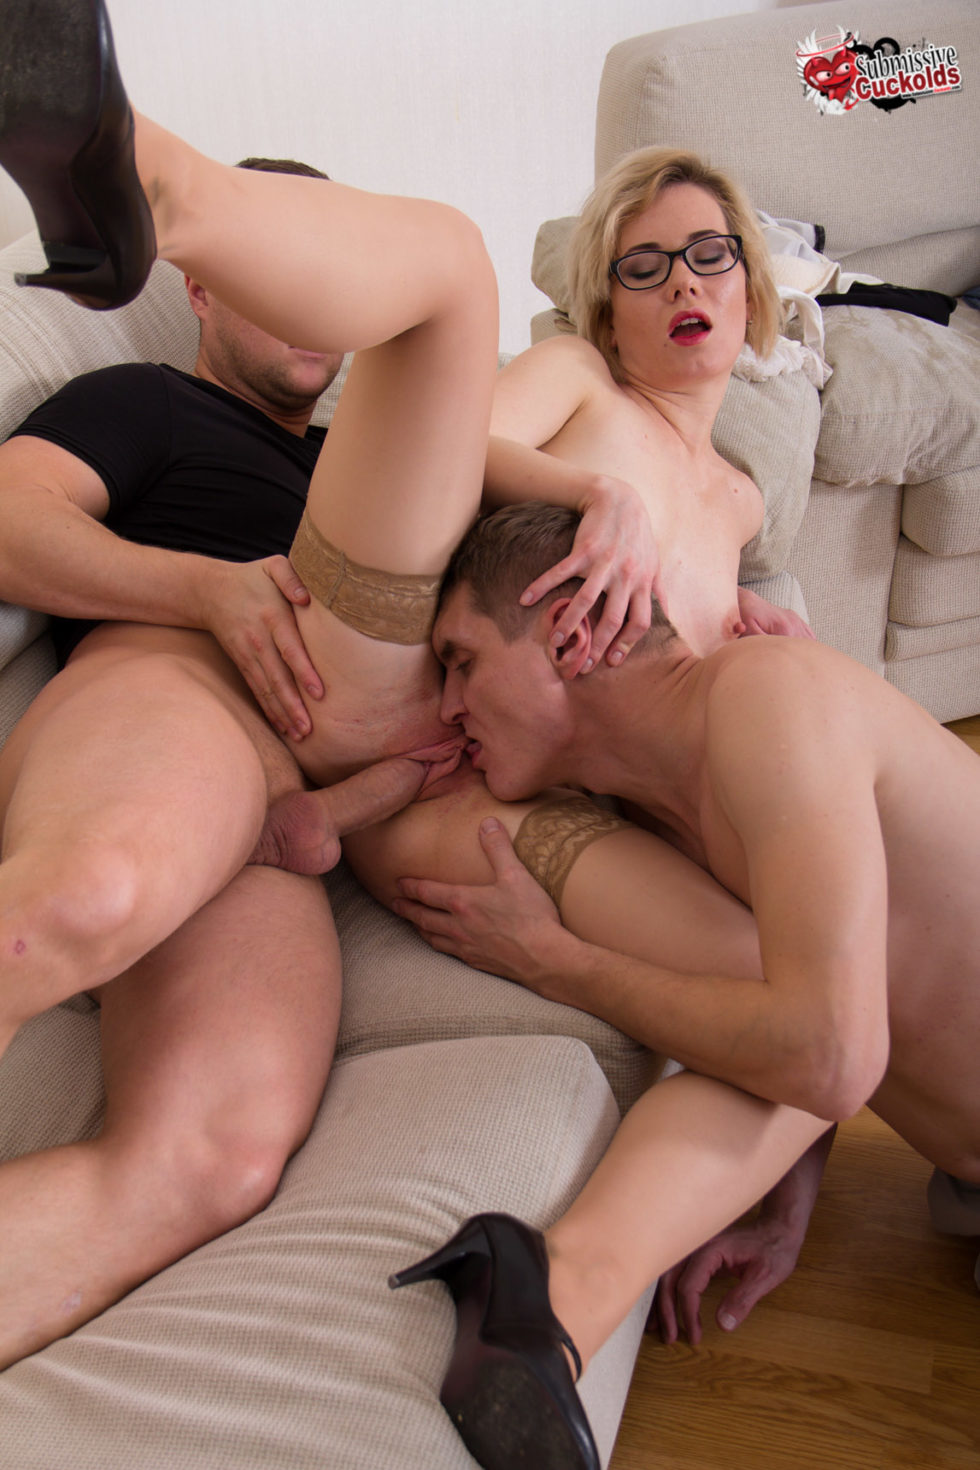 He caught his wife cuckold and was humiliated